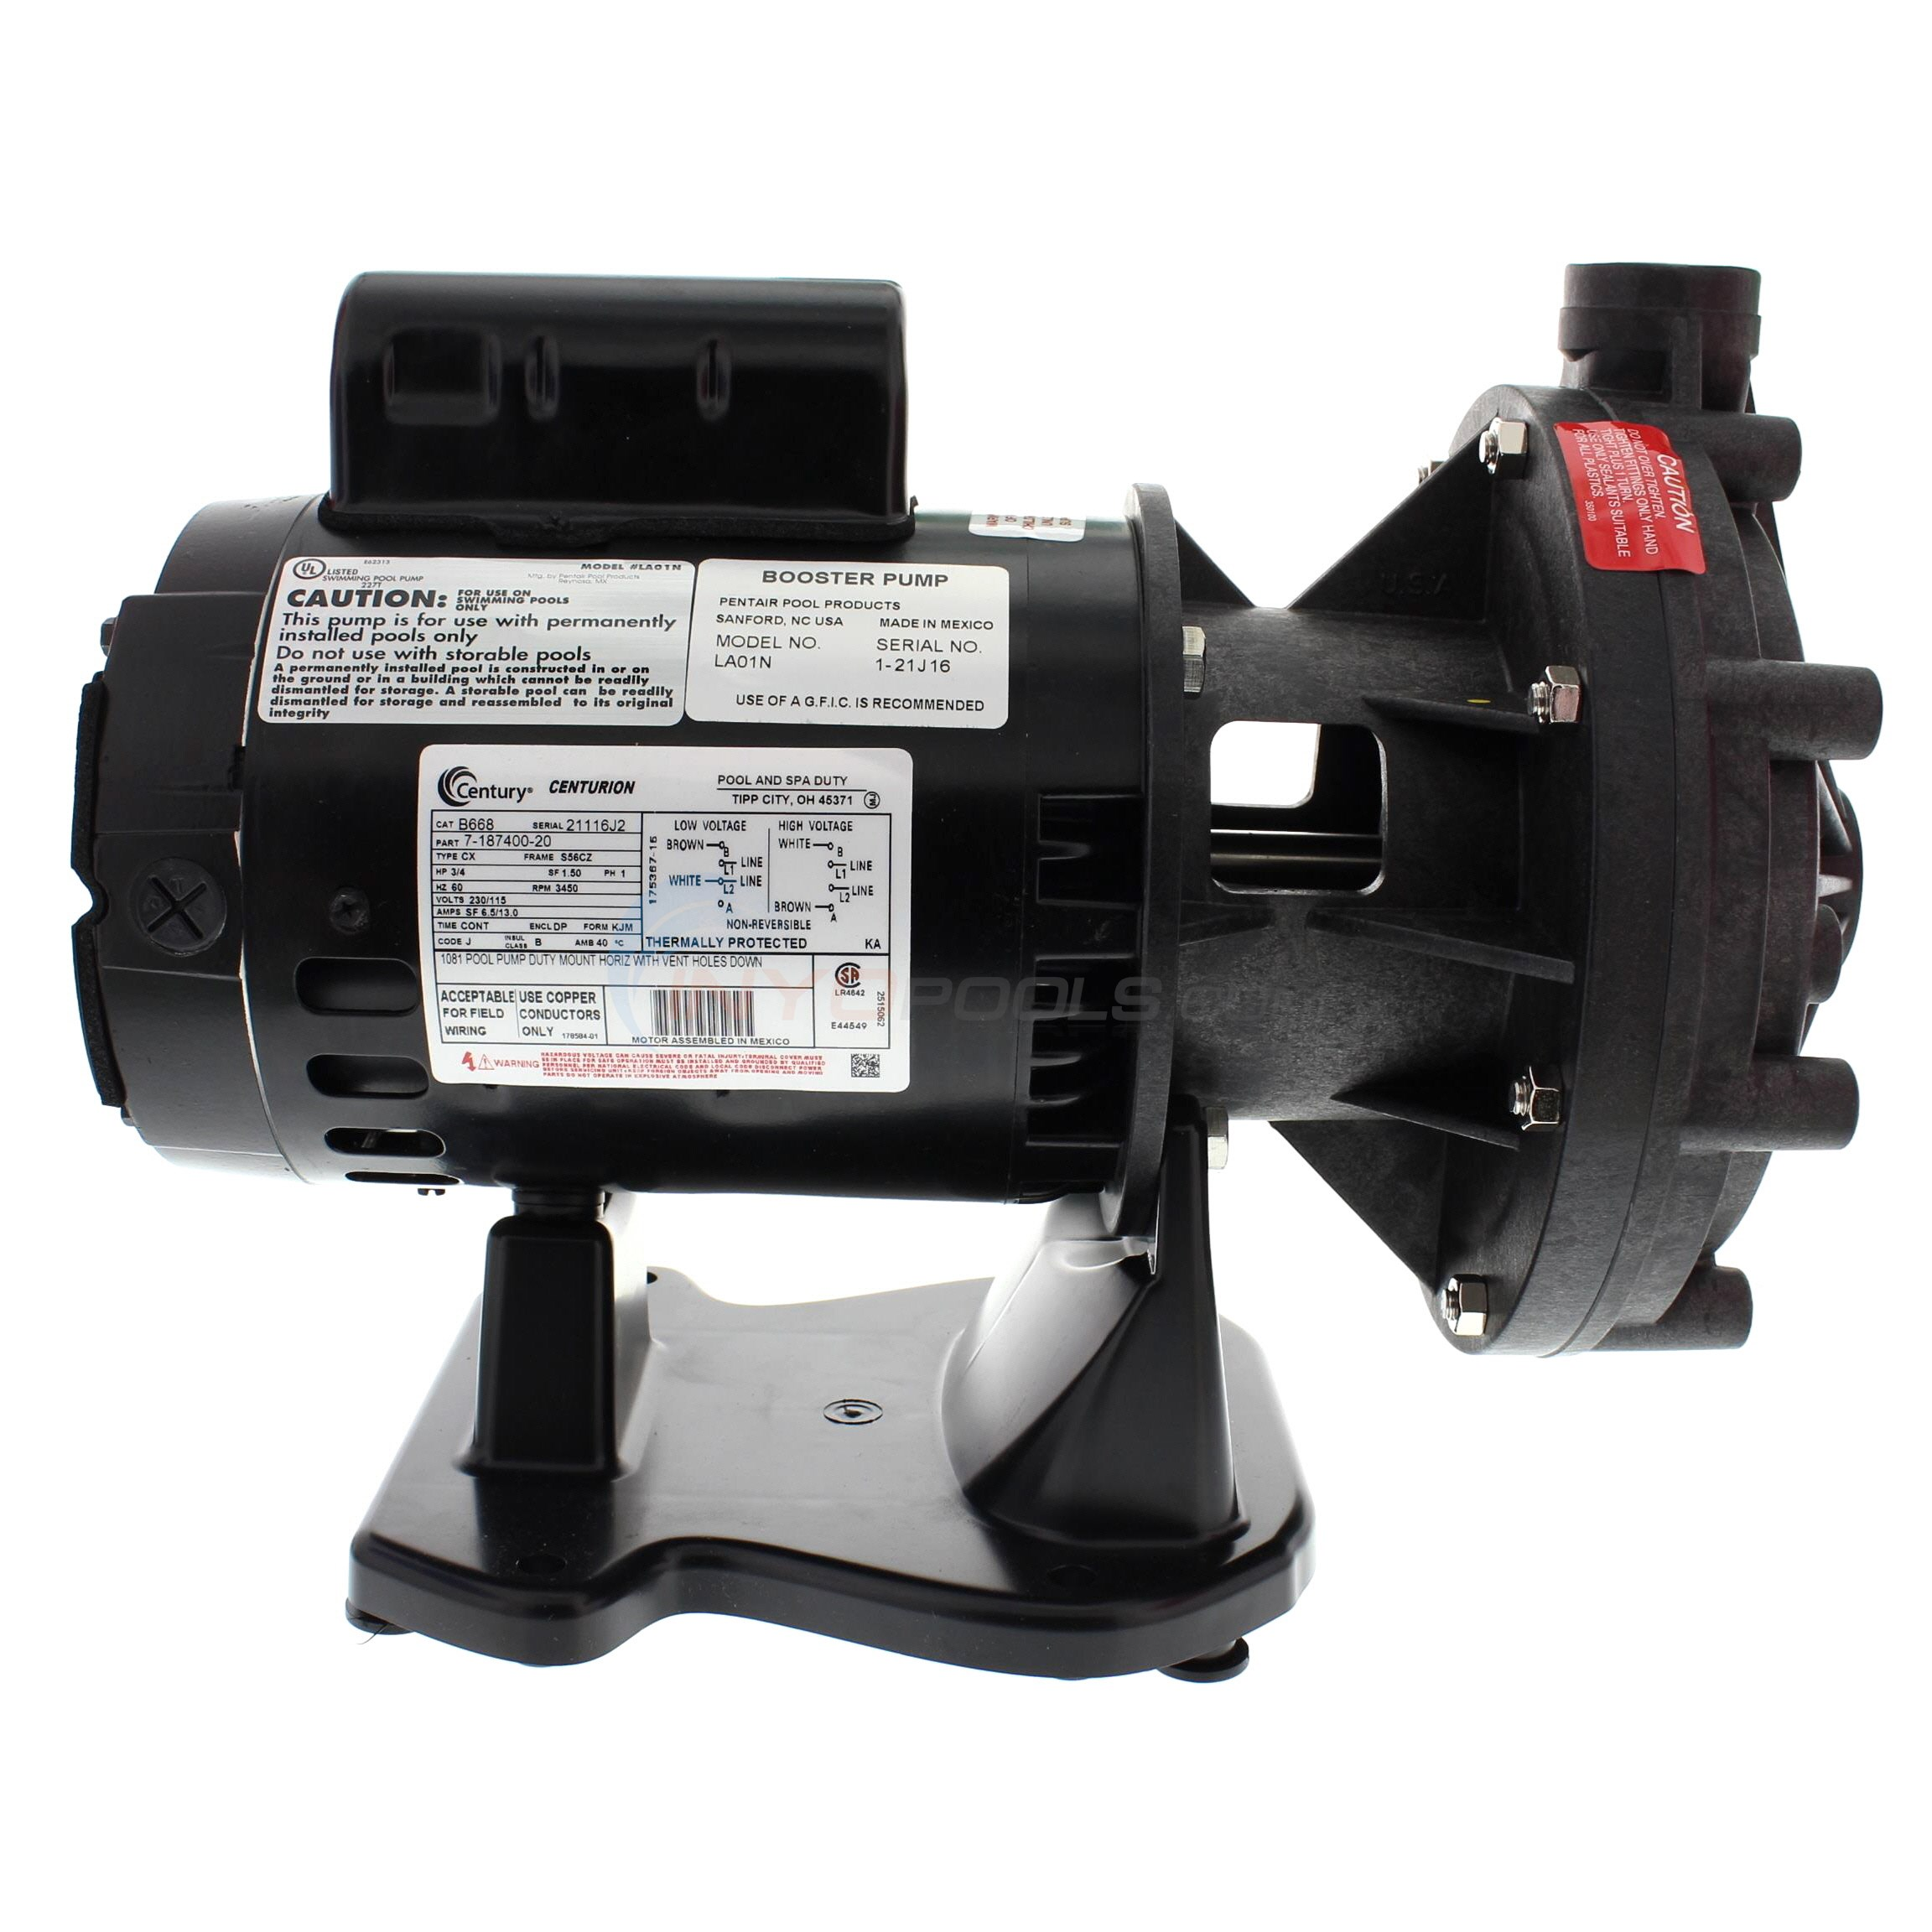 Pentair Letro Universal 3/4 HP Booster Pump - LA01N